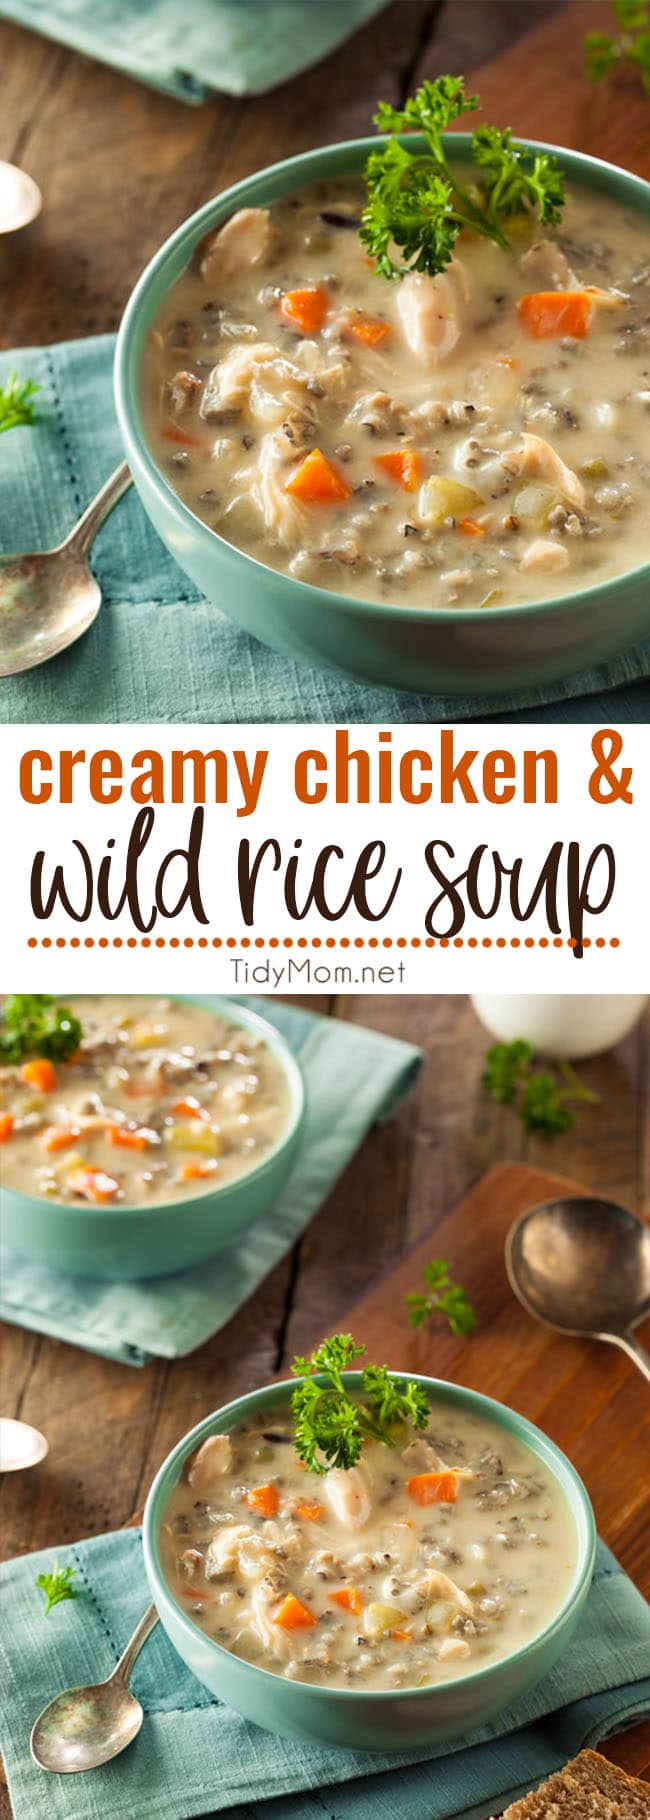 This Panera Copycat Creamy Chicken and Wild Rice Soup continues to be a family favorite. It's delicious and hearty, perfect for cold winter nights. Print the full recipe at TidyMom.net